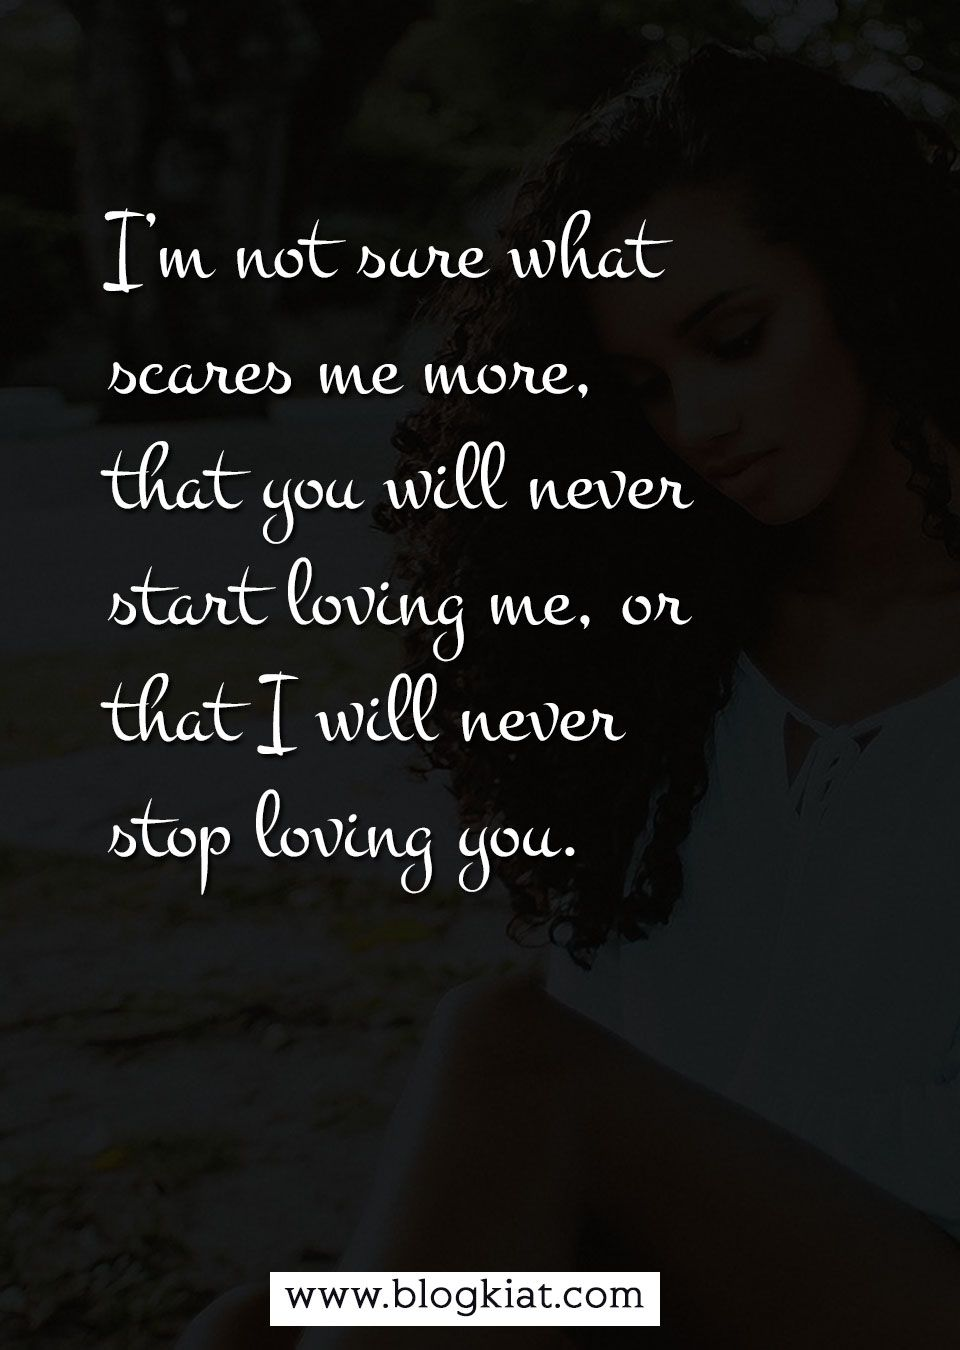 Quotes About One Sided Love - Inspiring Quotes